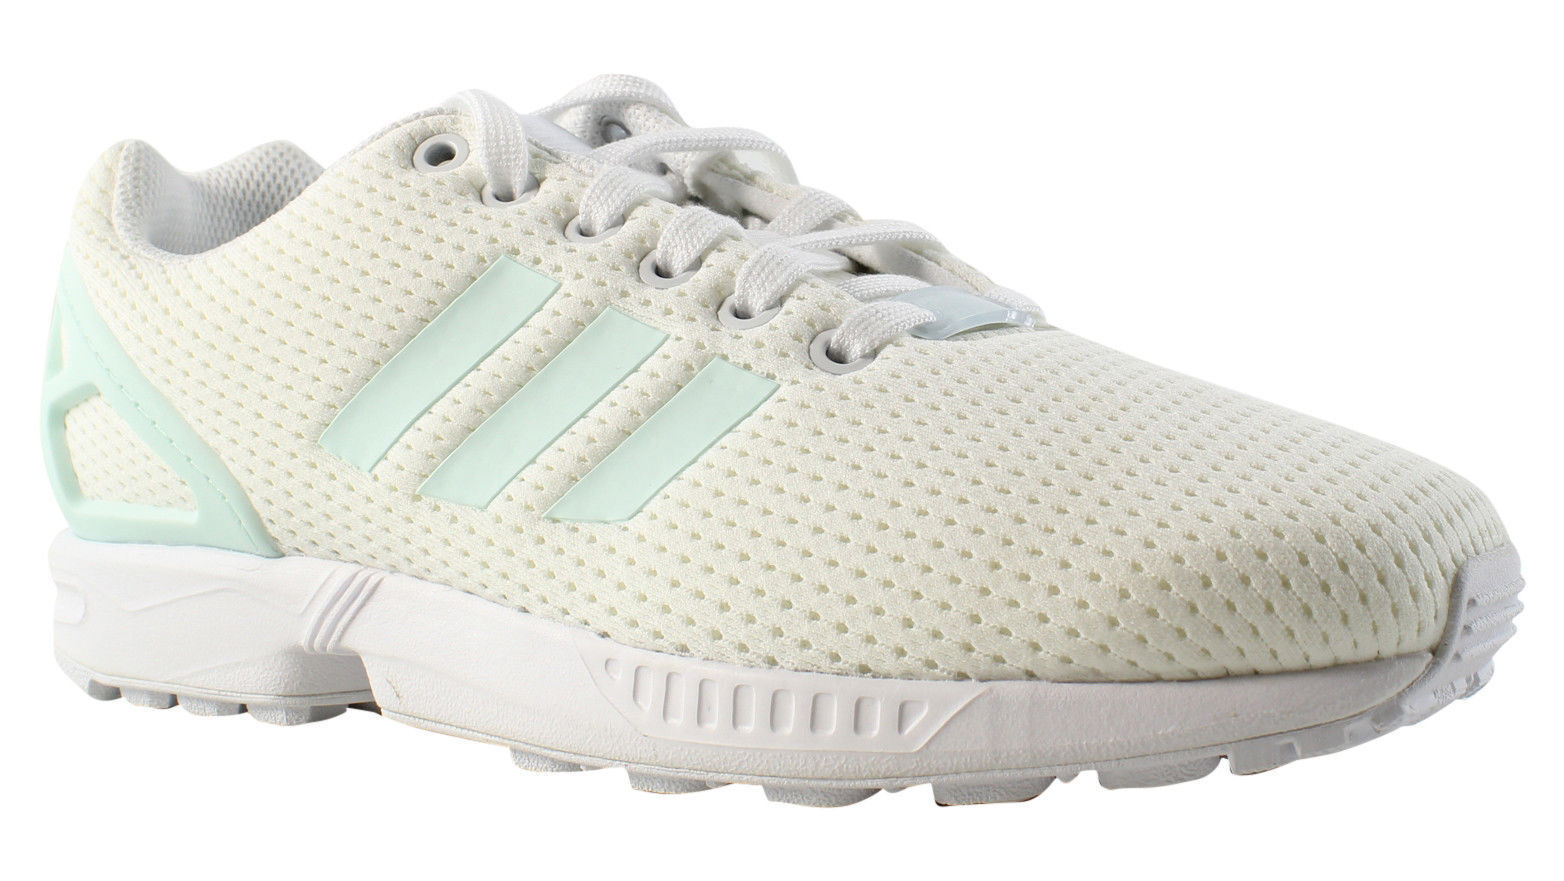 New Adidas Cross Training ZX Flux White Running shoes Size 7 & 7.5 BY9219